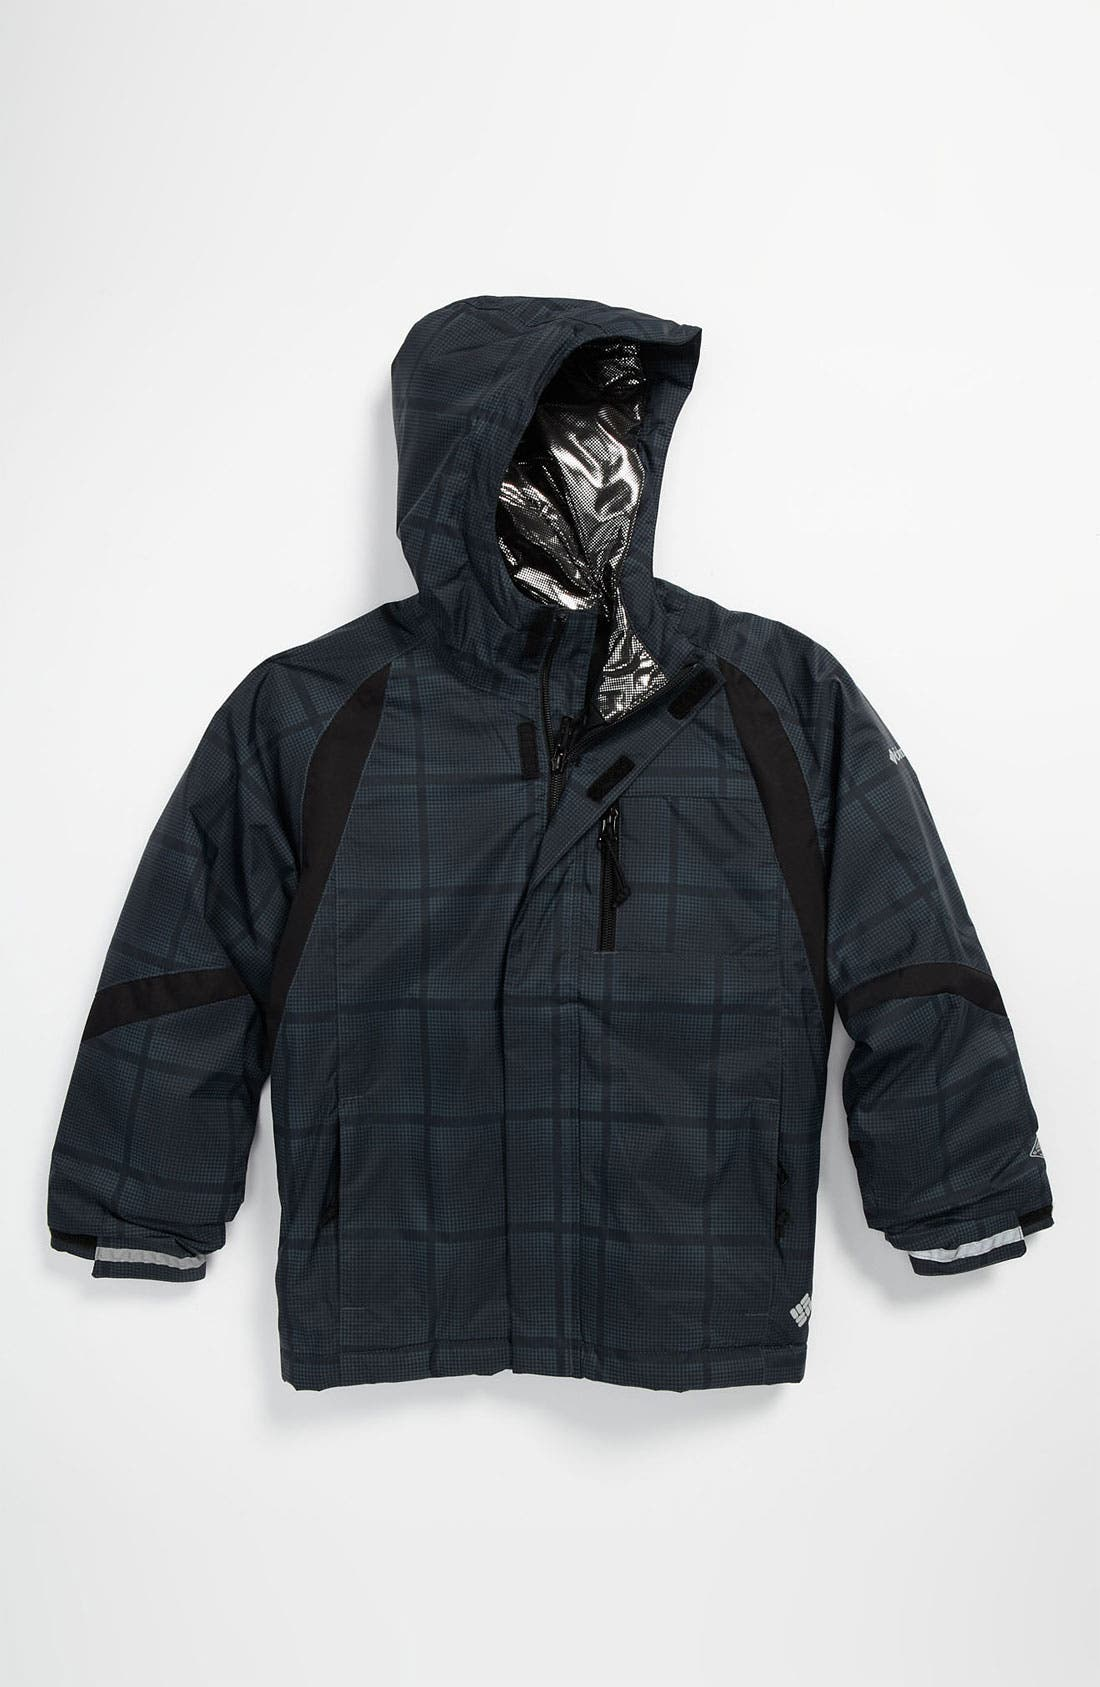 Alternate Image 1 Selected - Columbia 'Renegade Warmth' Jacket (Little Boys & Big Boys)